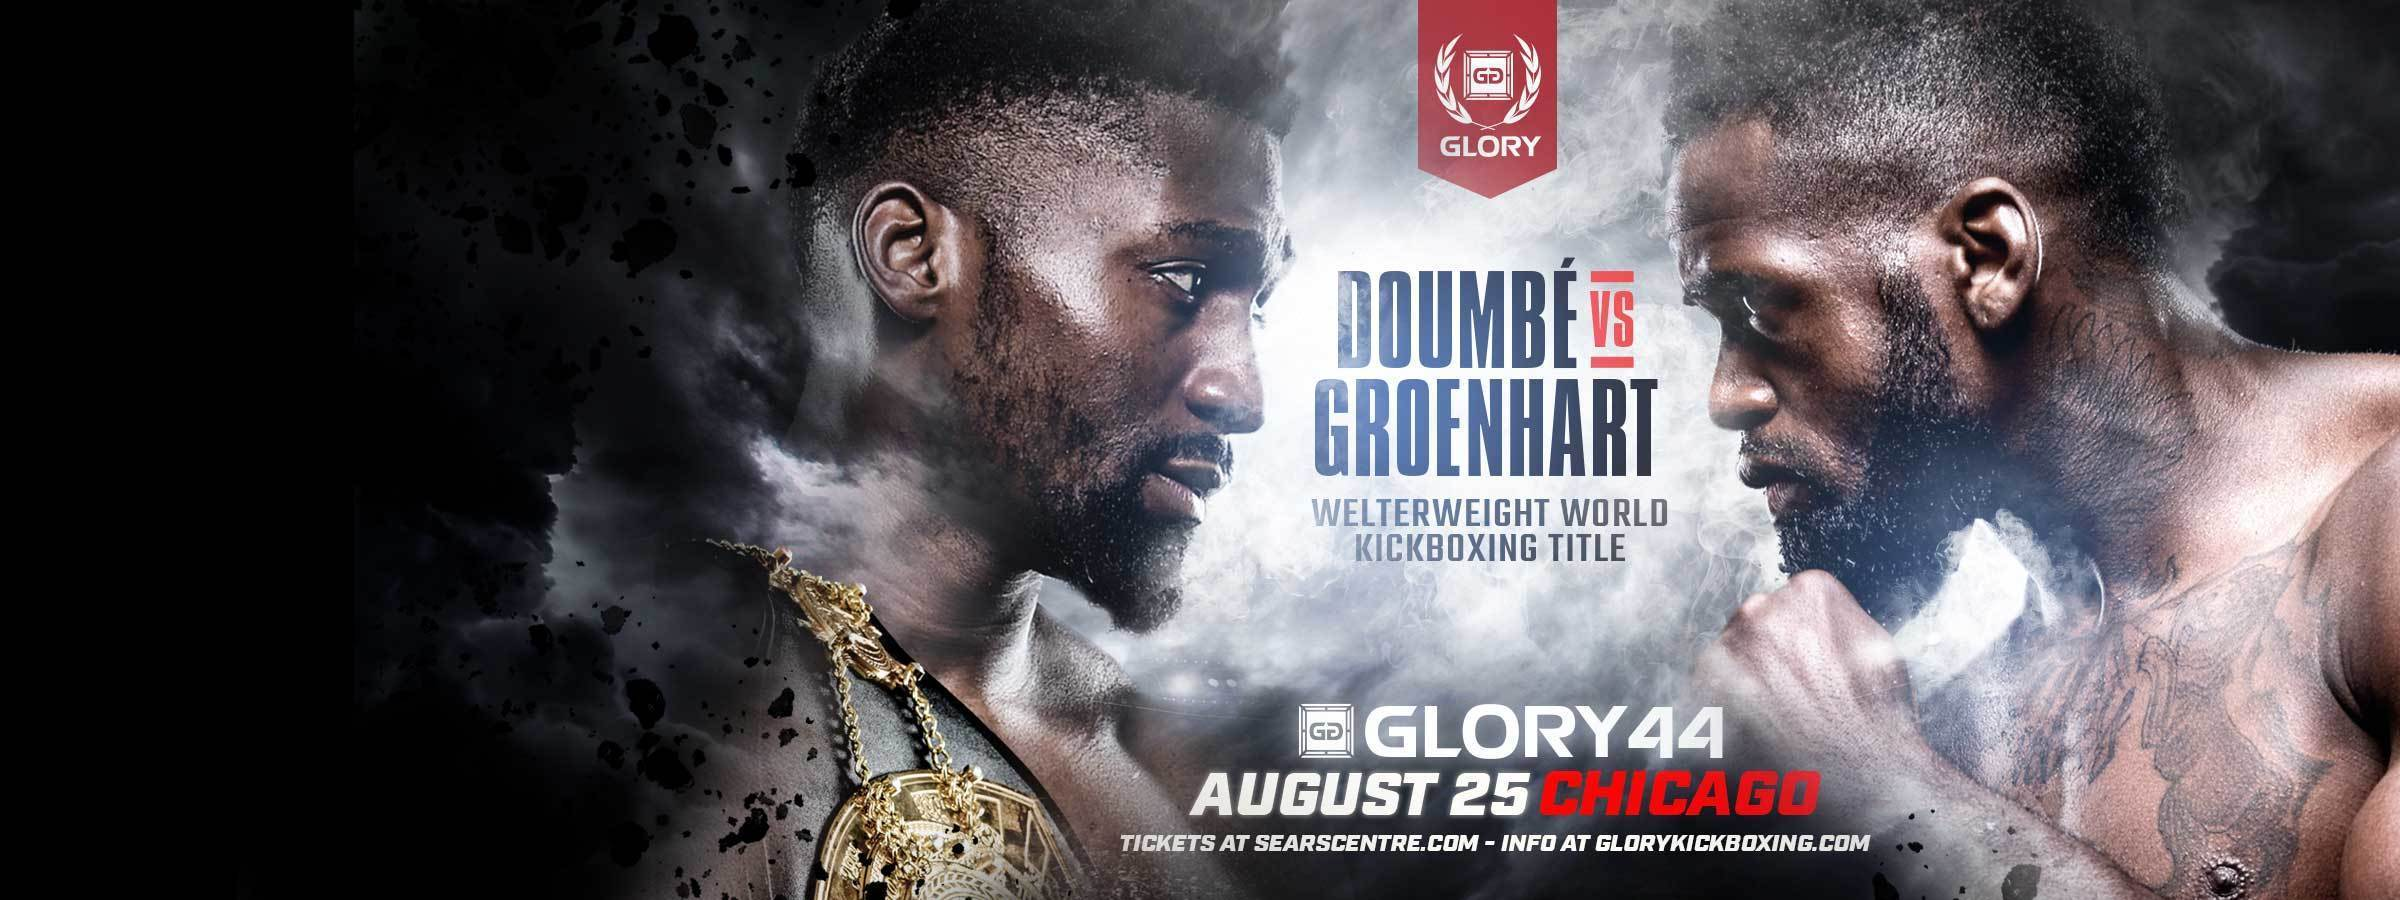 GLORY 44 Chicago